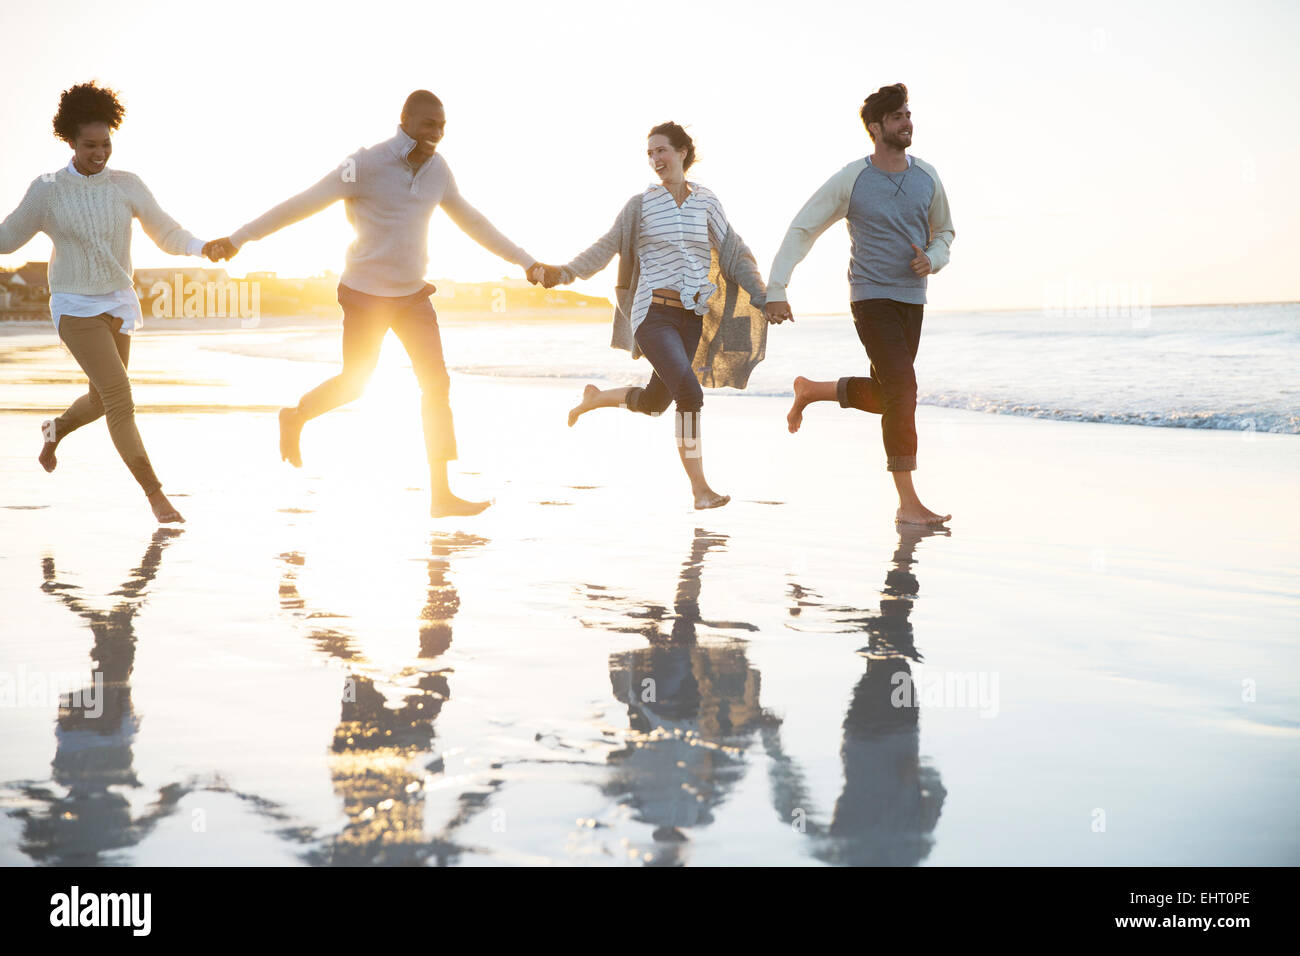 Group of four friends holding hands and running on beach - Stock Image